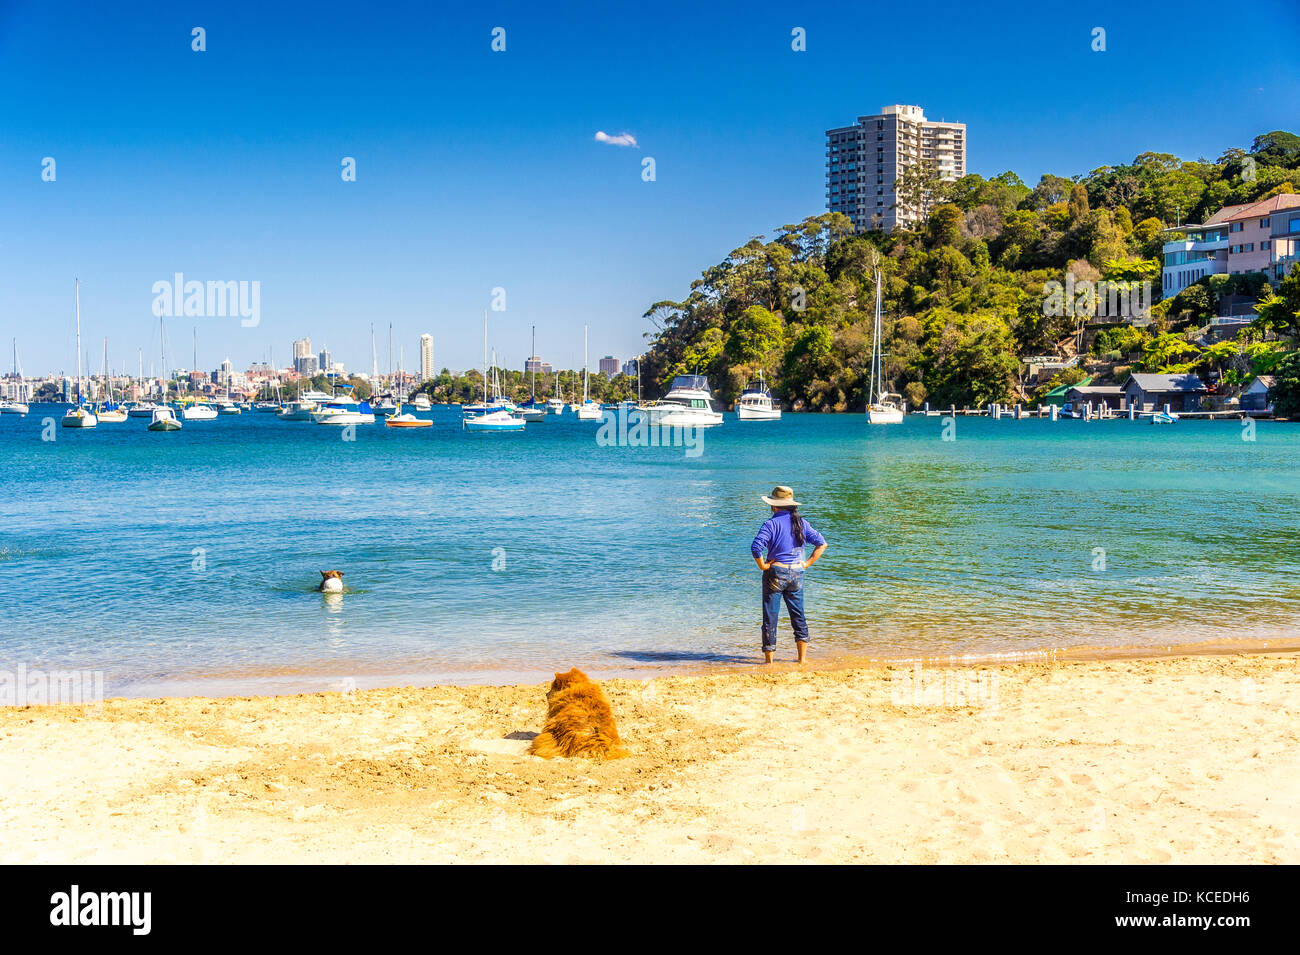 A German Shepherd dog retrieves a ball from the water at a Sydney Beach - Stock Image